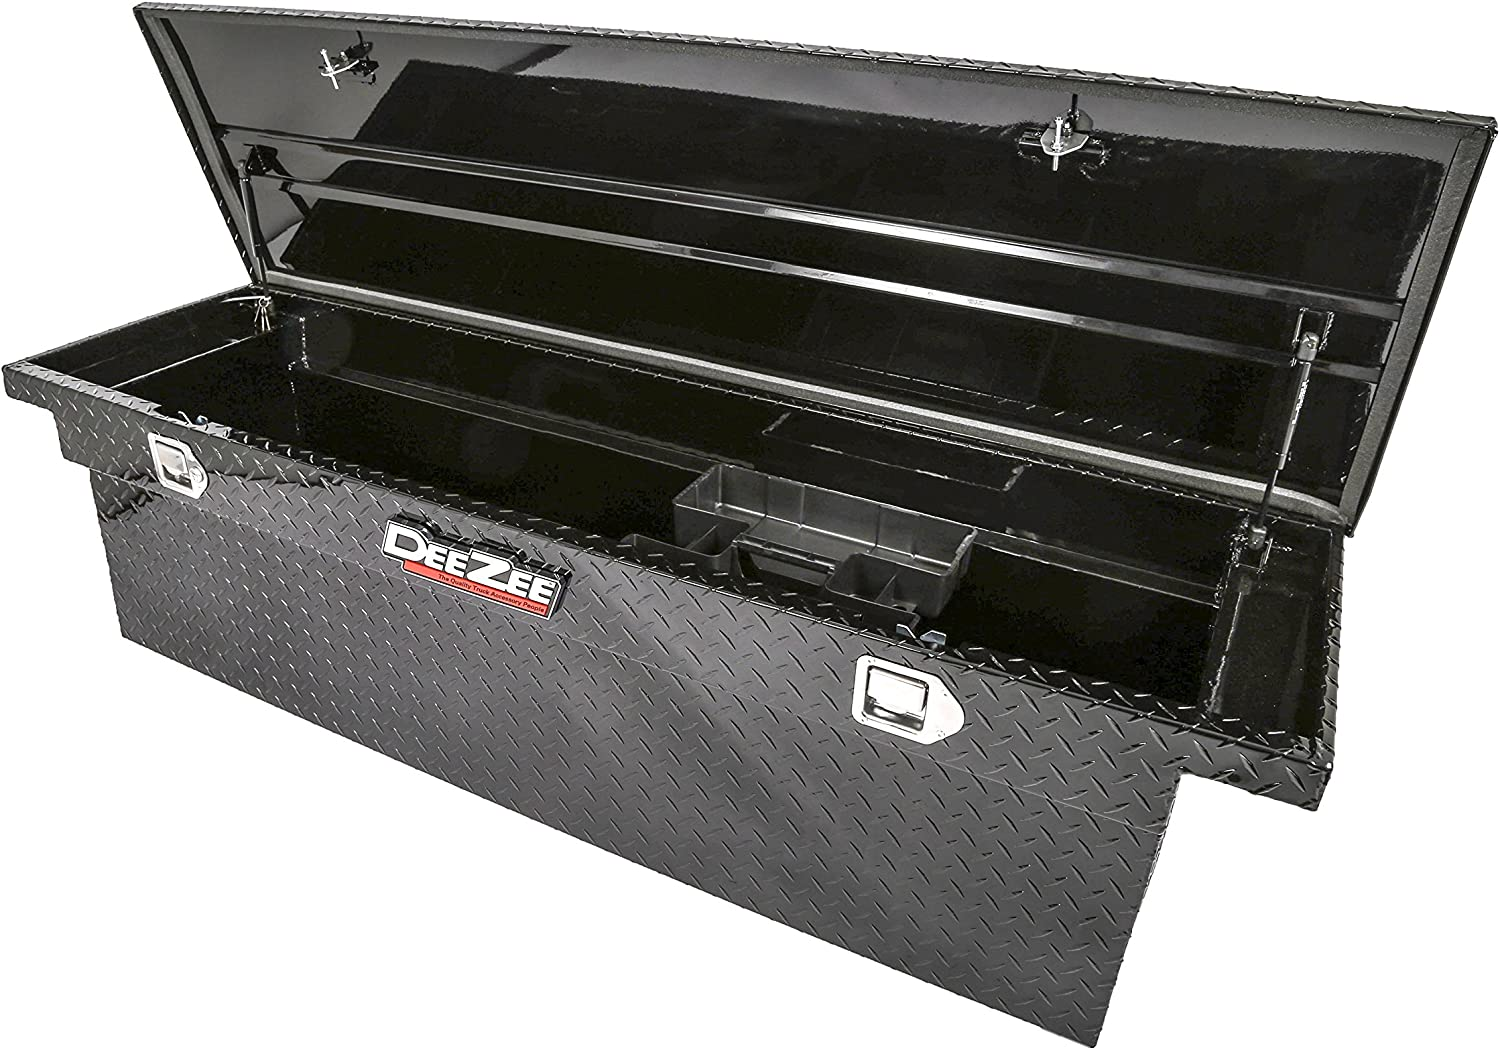 Dee Zee DZ8170DLB Red Label Crossover Tool Box Low Profile Deep